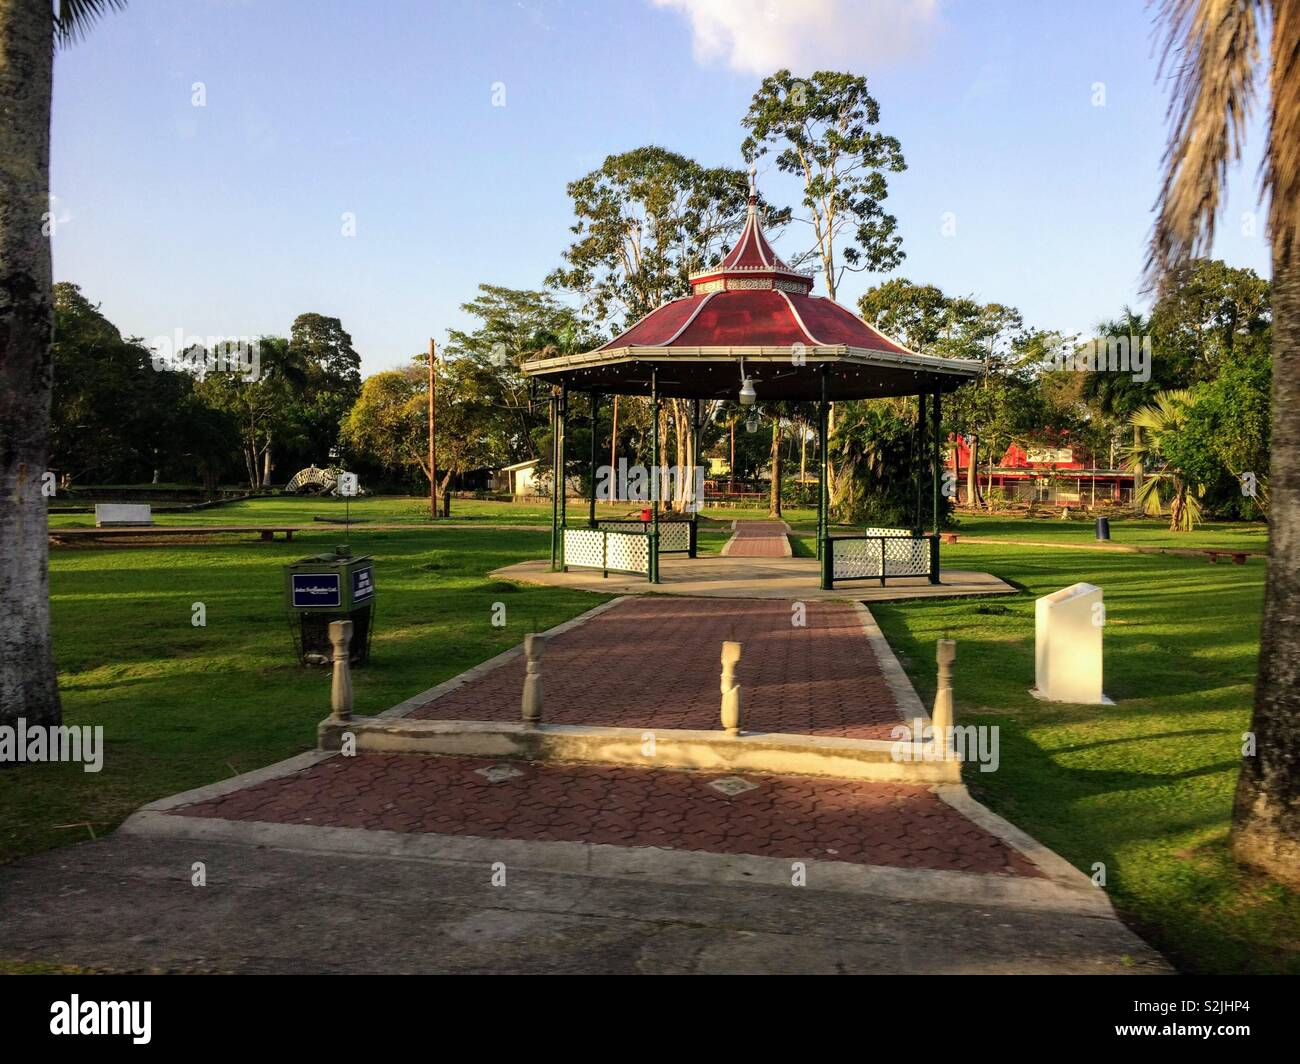 Bandstand in Georgetown botanical gardens - Stock Image